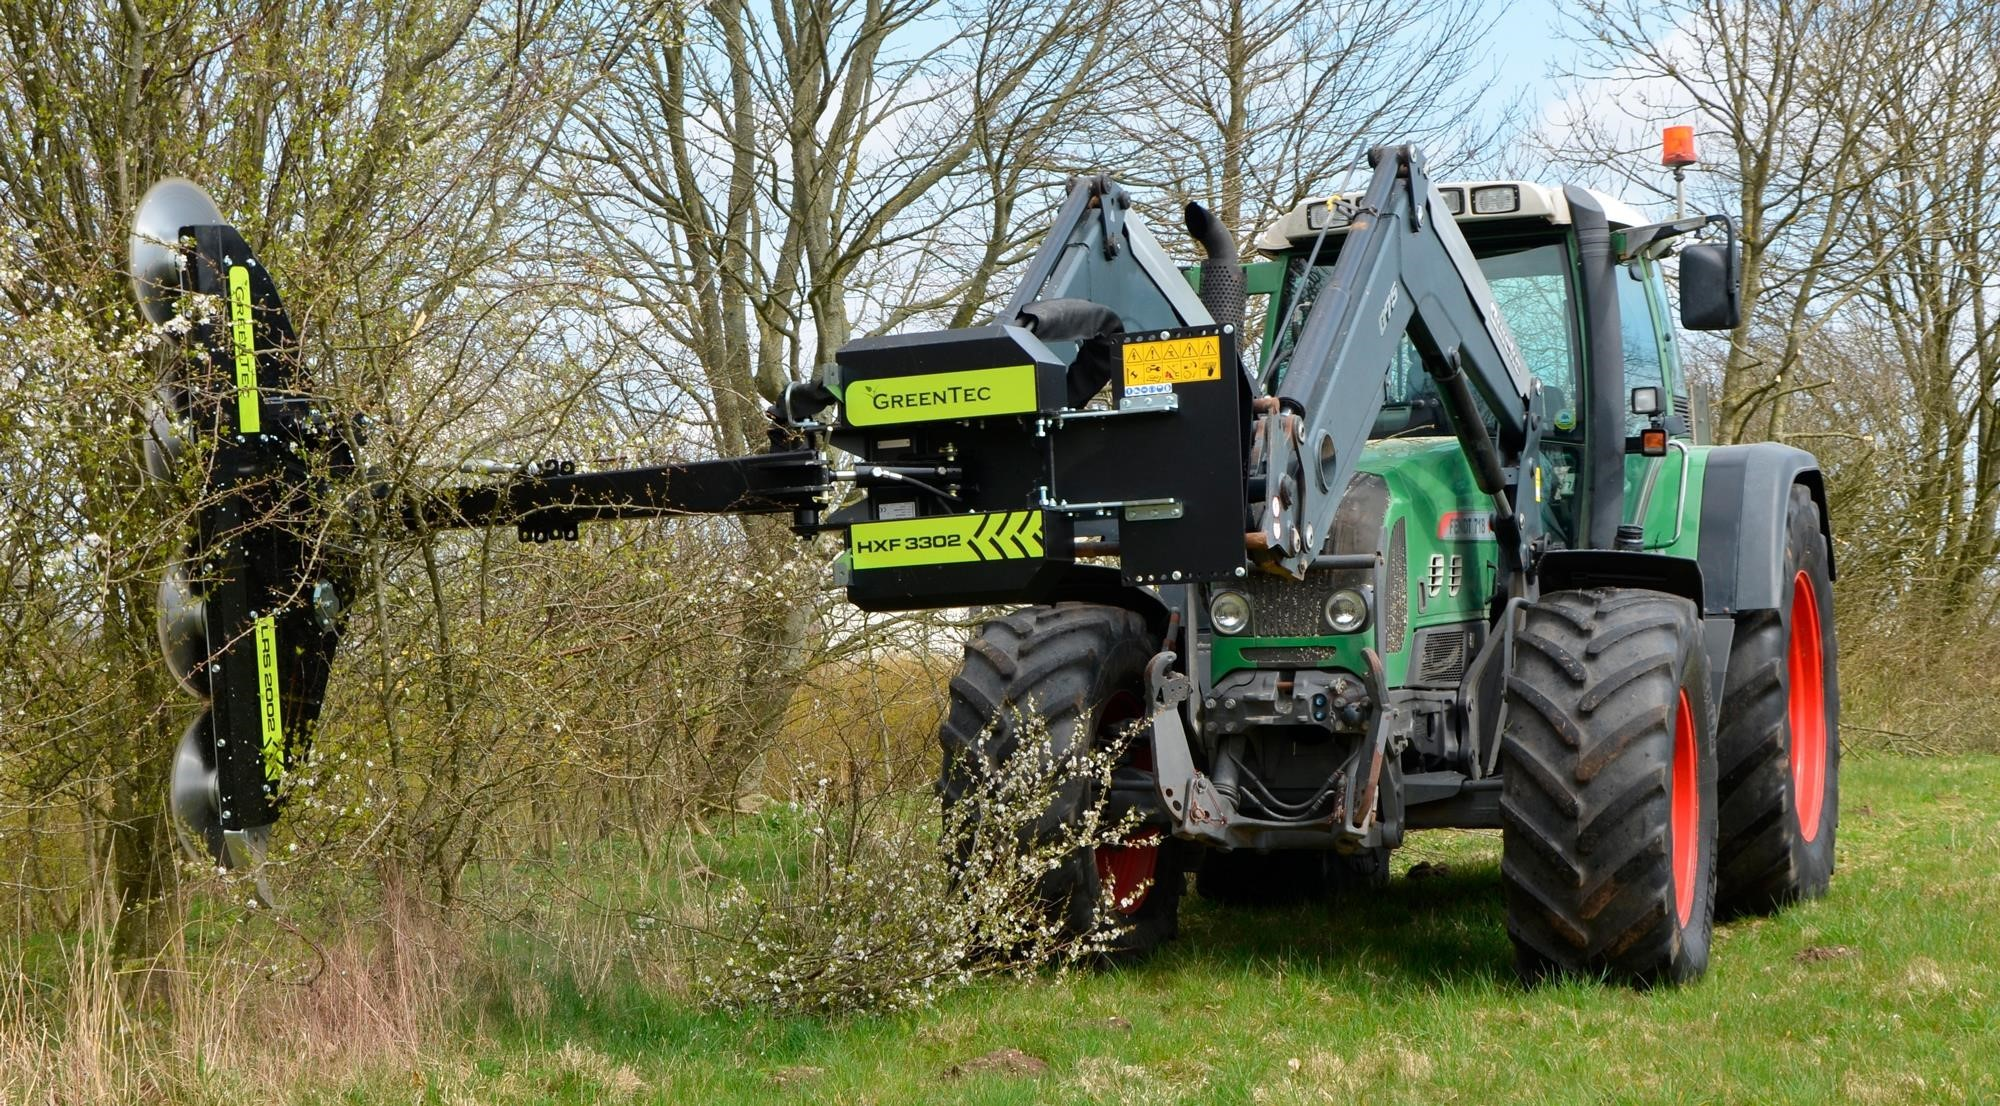 2020 GREENTEC LRS2002 Loader and Skid Steer Attachment